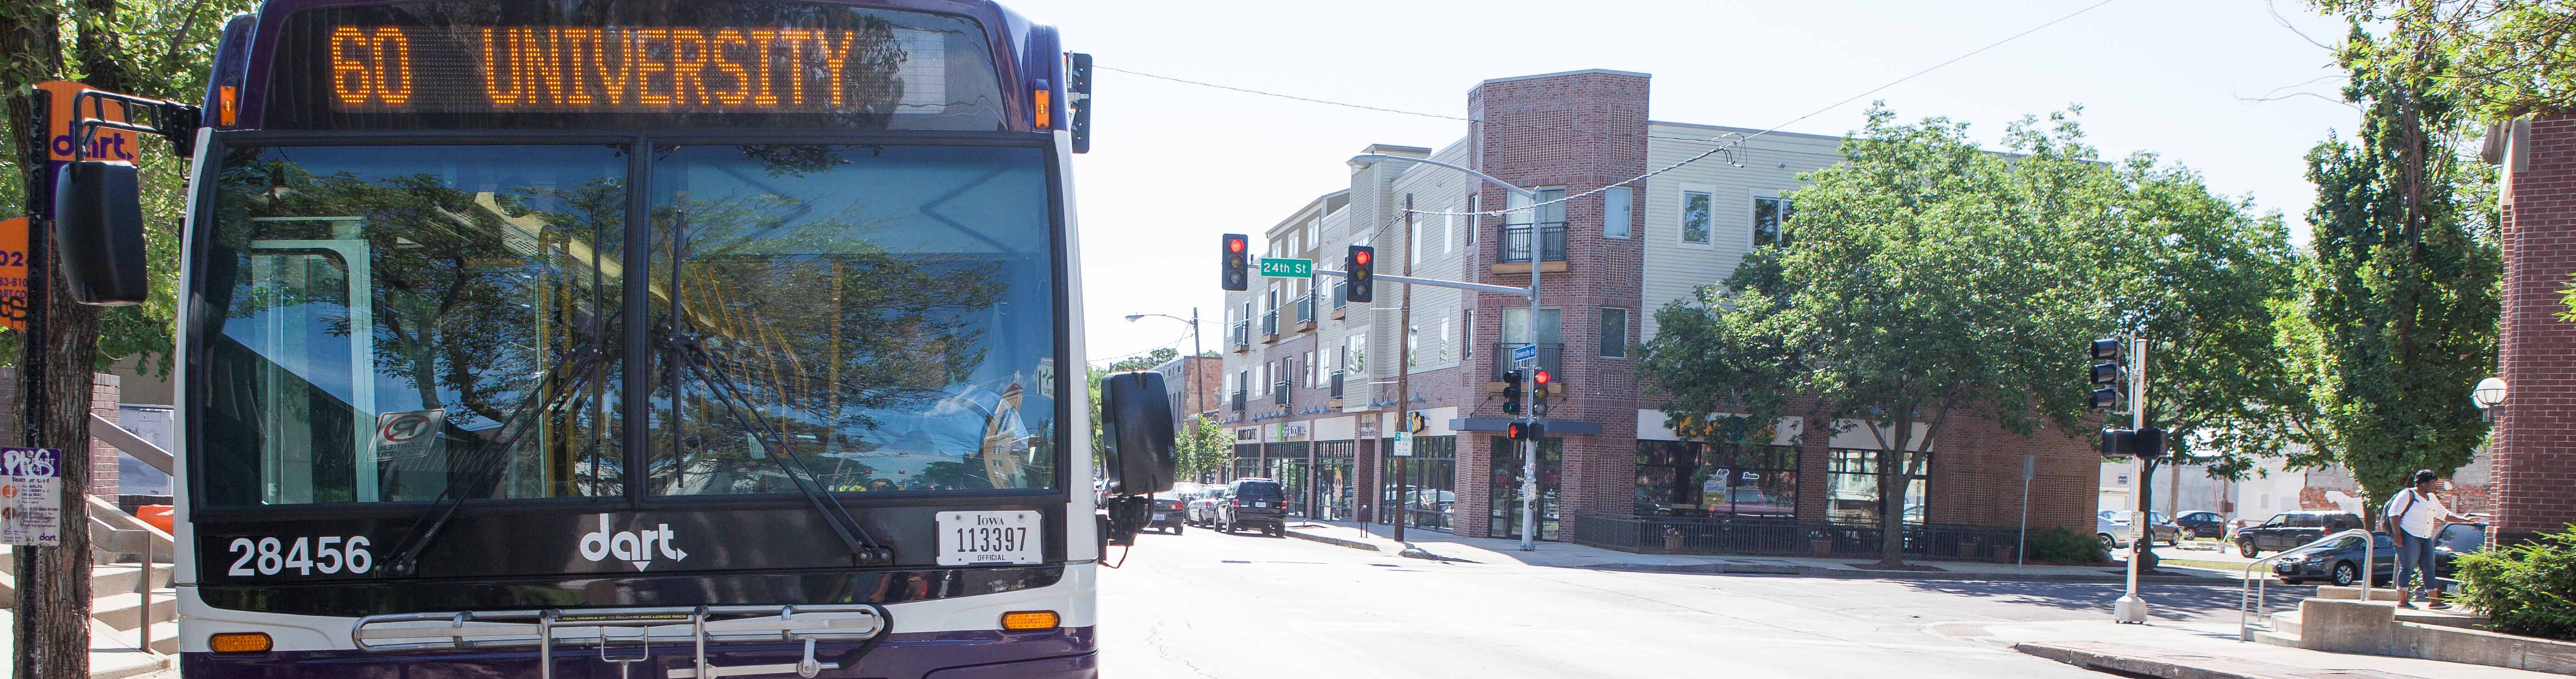 Try Transit Week is October 16 - 22. Ride free on DART Local, Express, Flex and On Call buses.